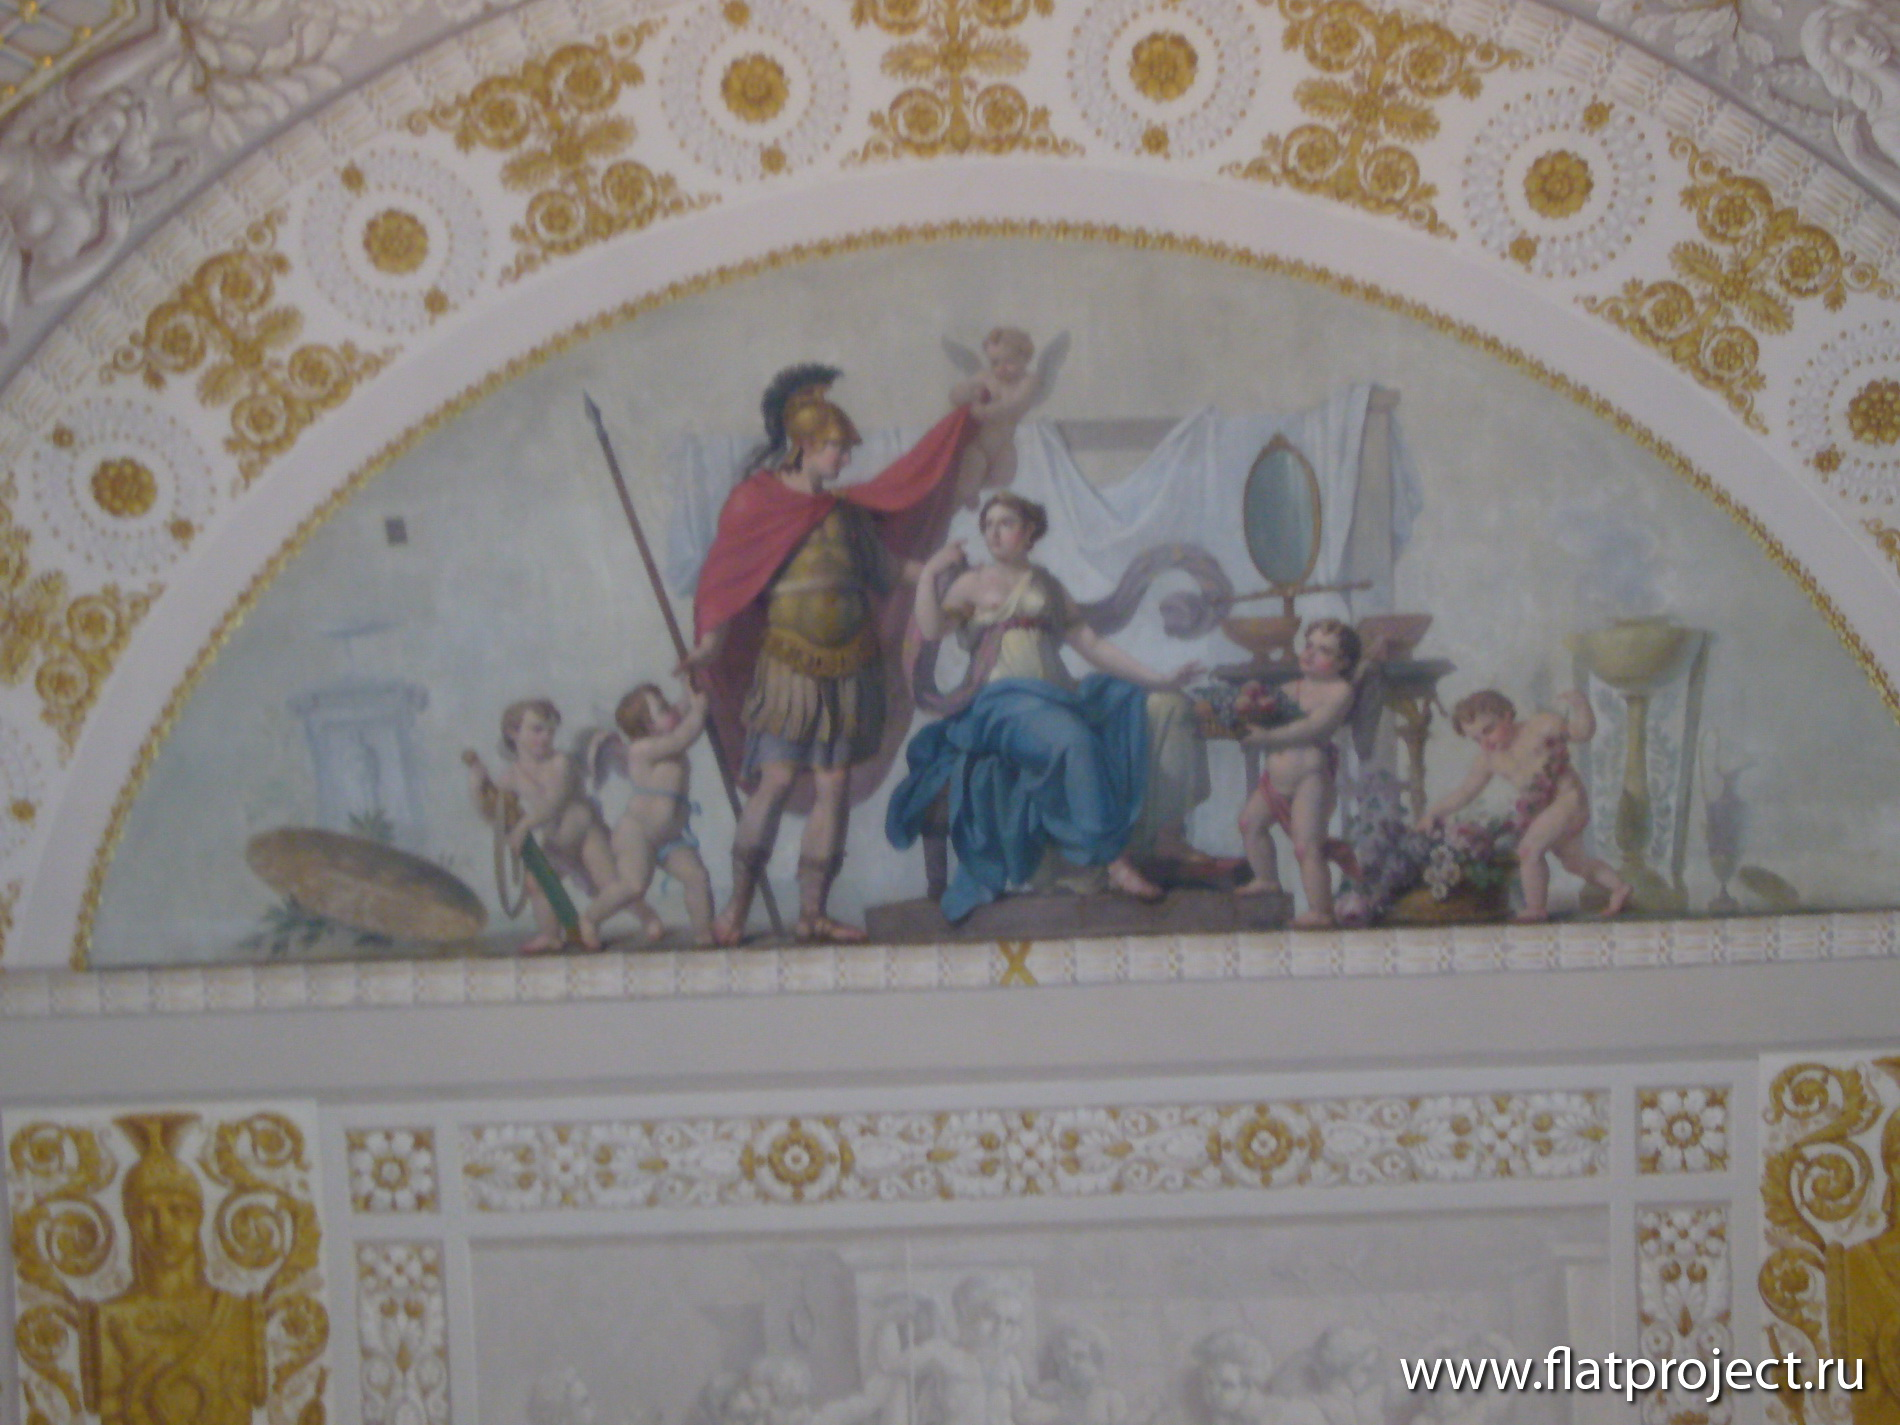 The State Russian museum interiors – photo 85